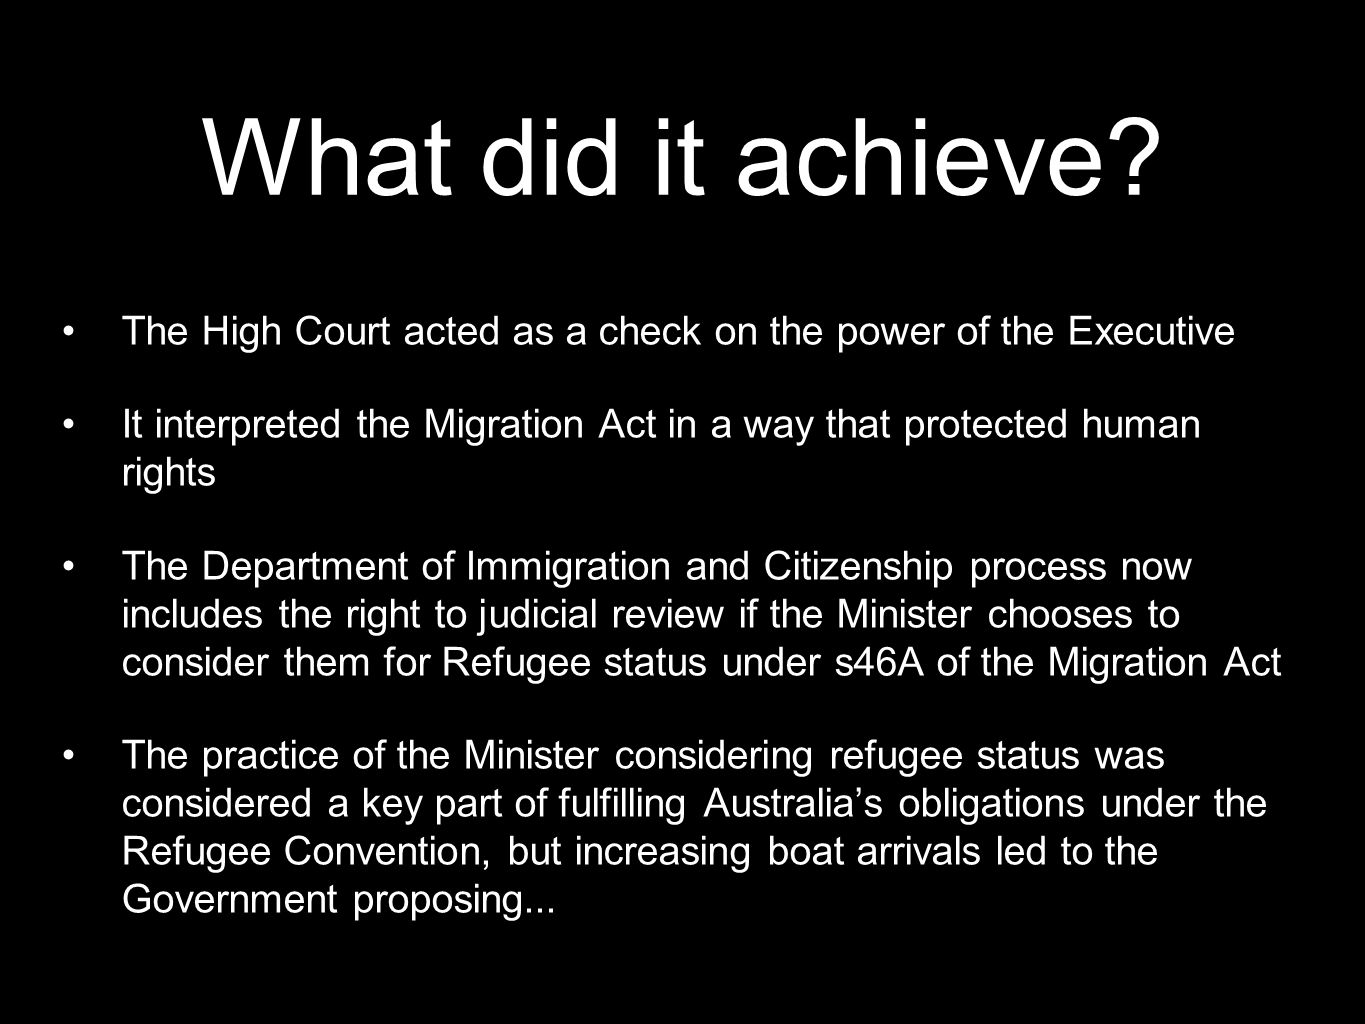 What did it achieve The High Court acted as a check on the power of the Executive.